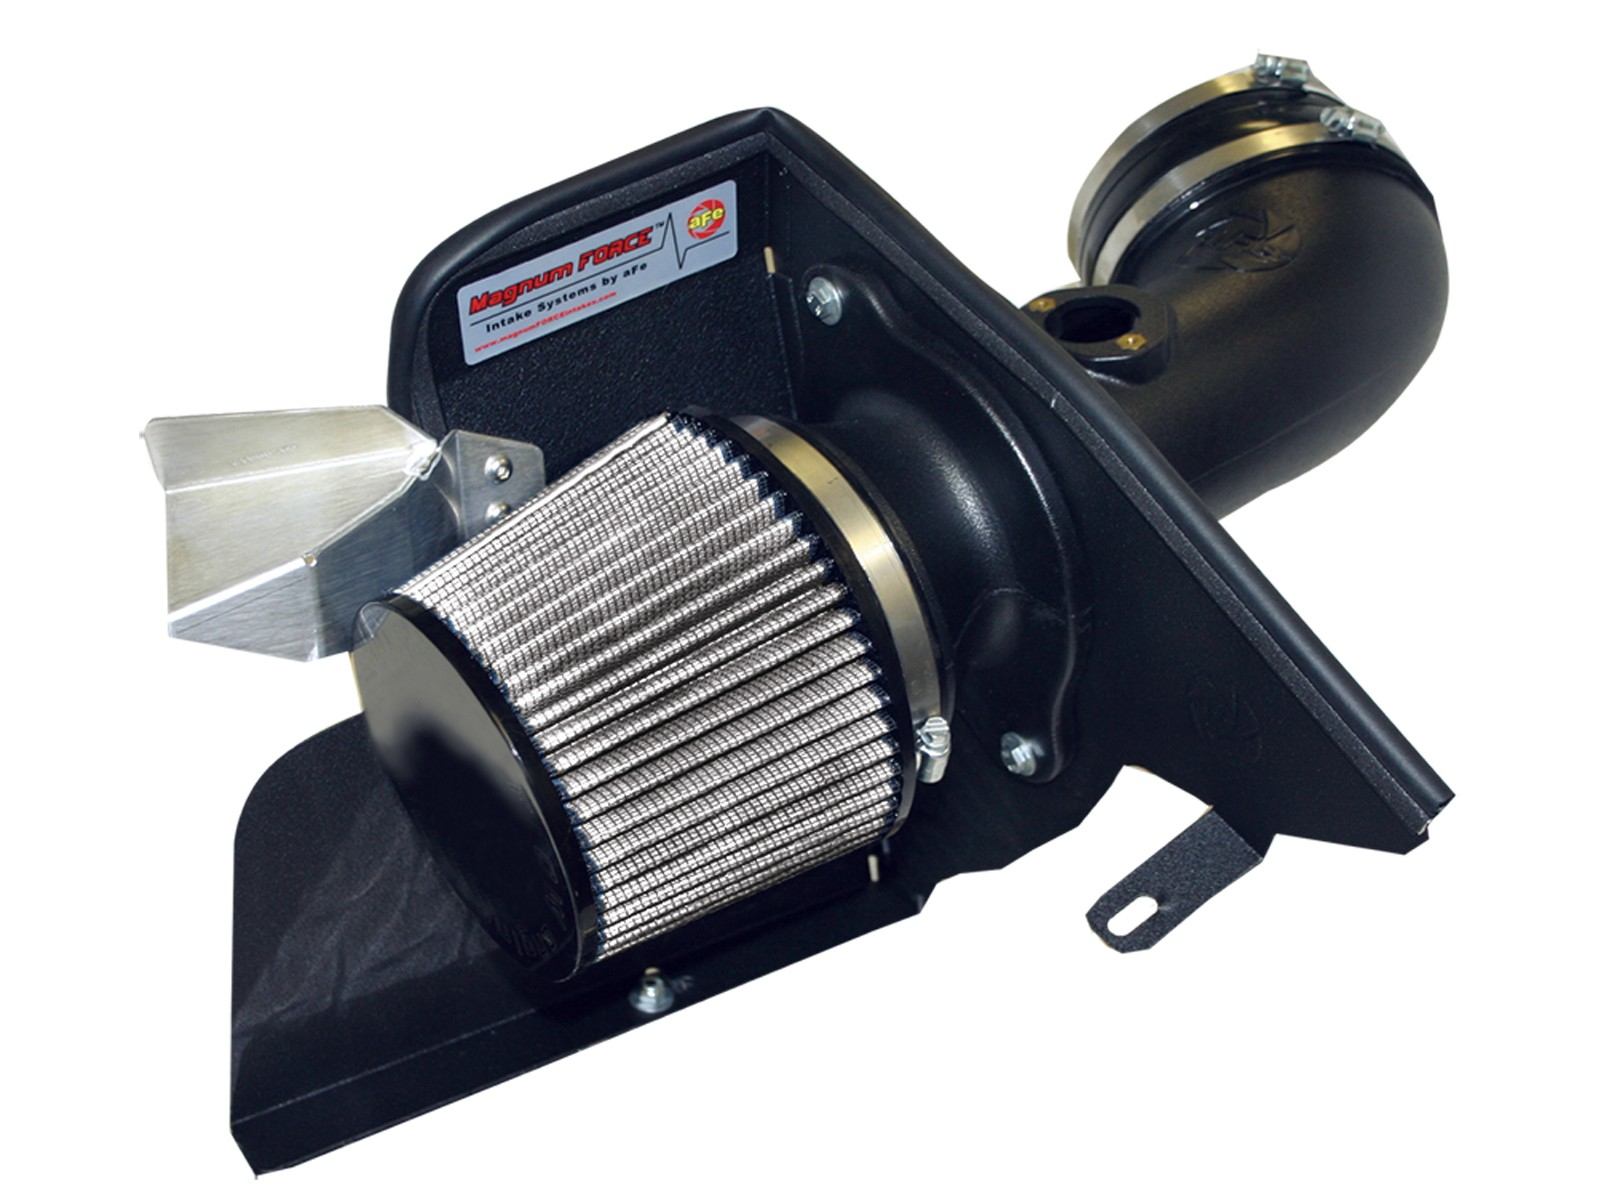 aFe POWER 51-10462 Magnum FORCE Stage-2 Pro DRY S Cold Air Intake System